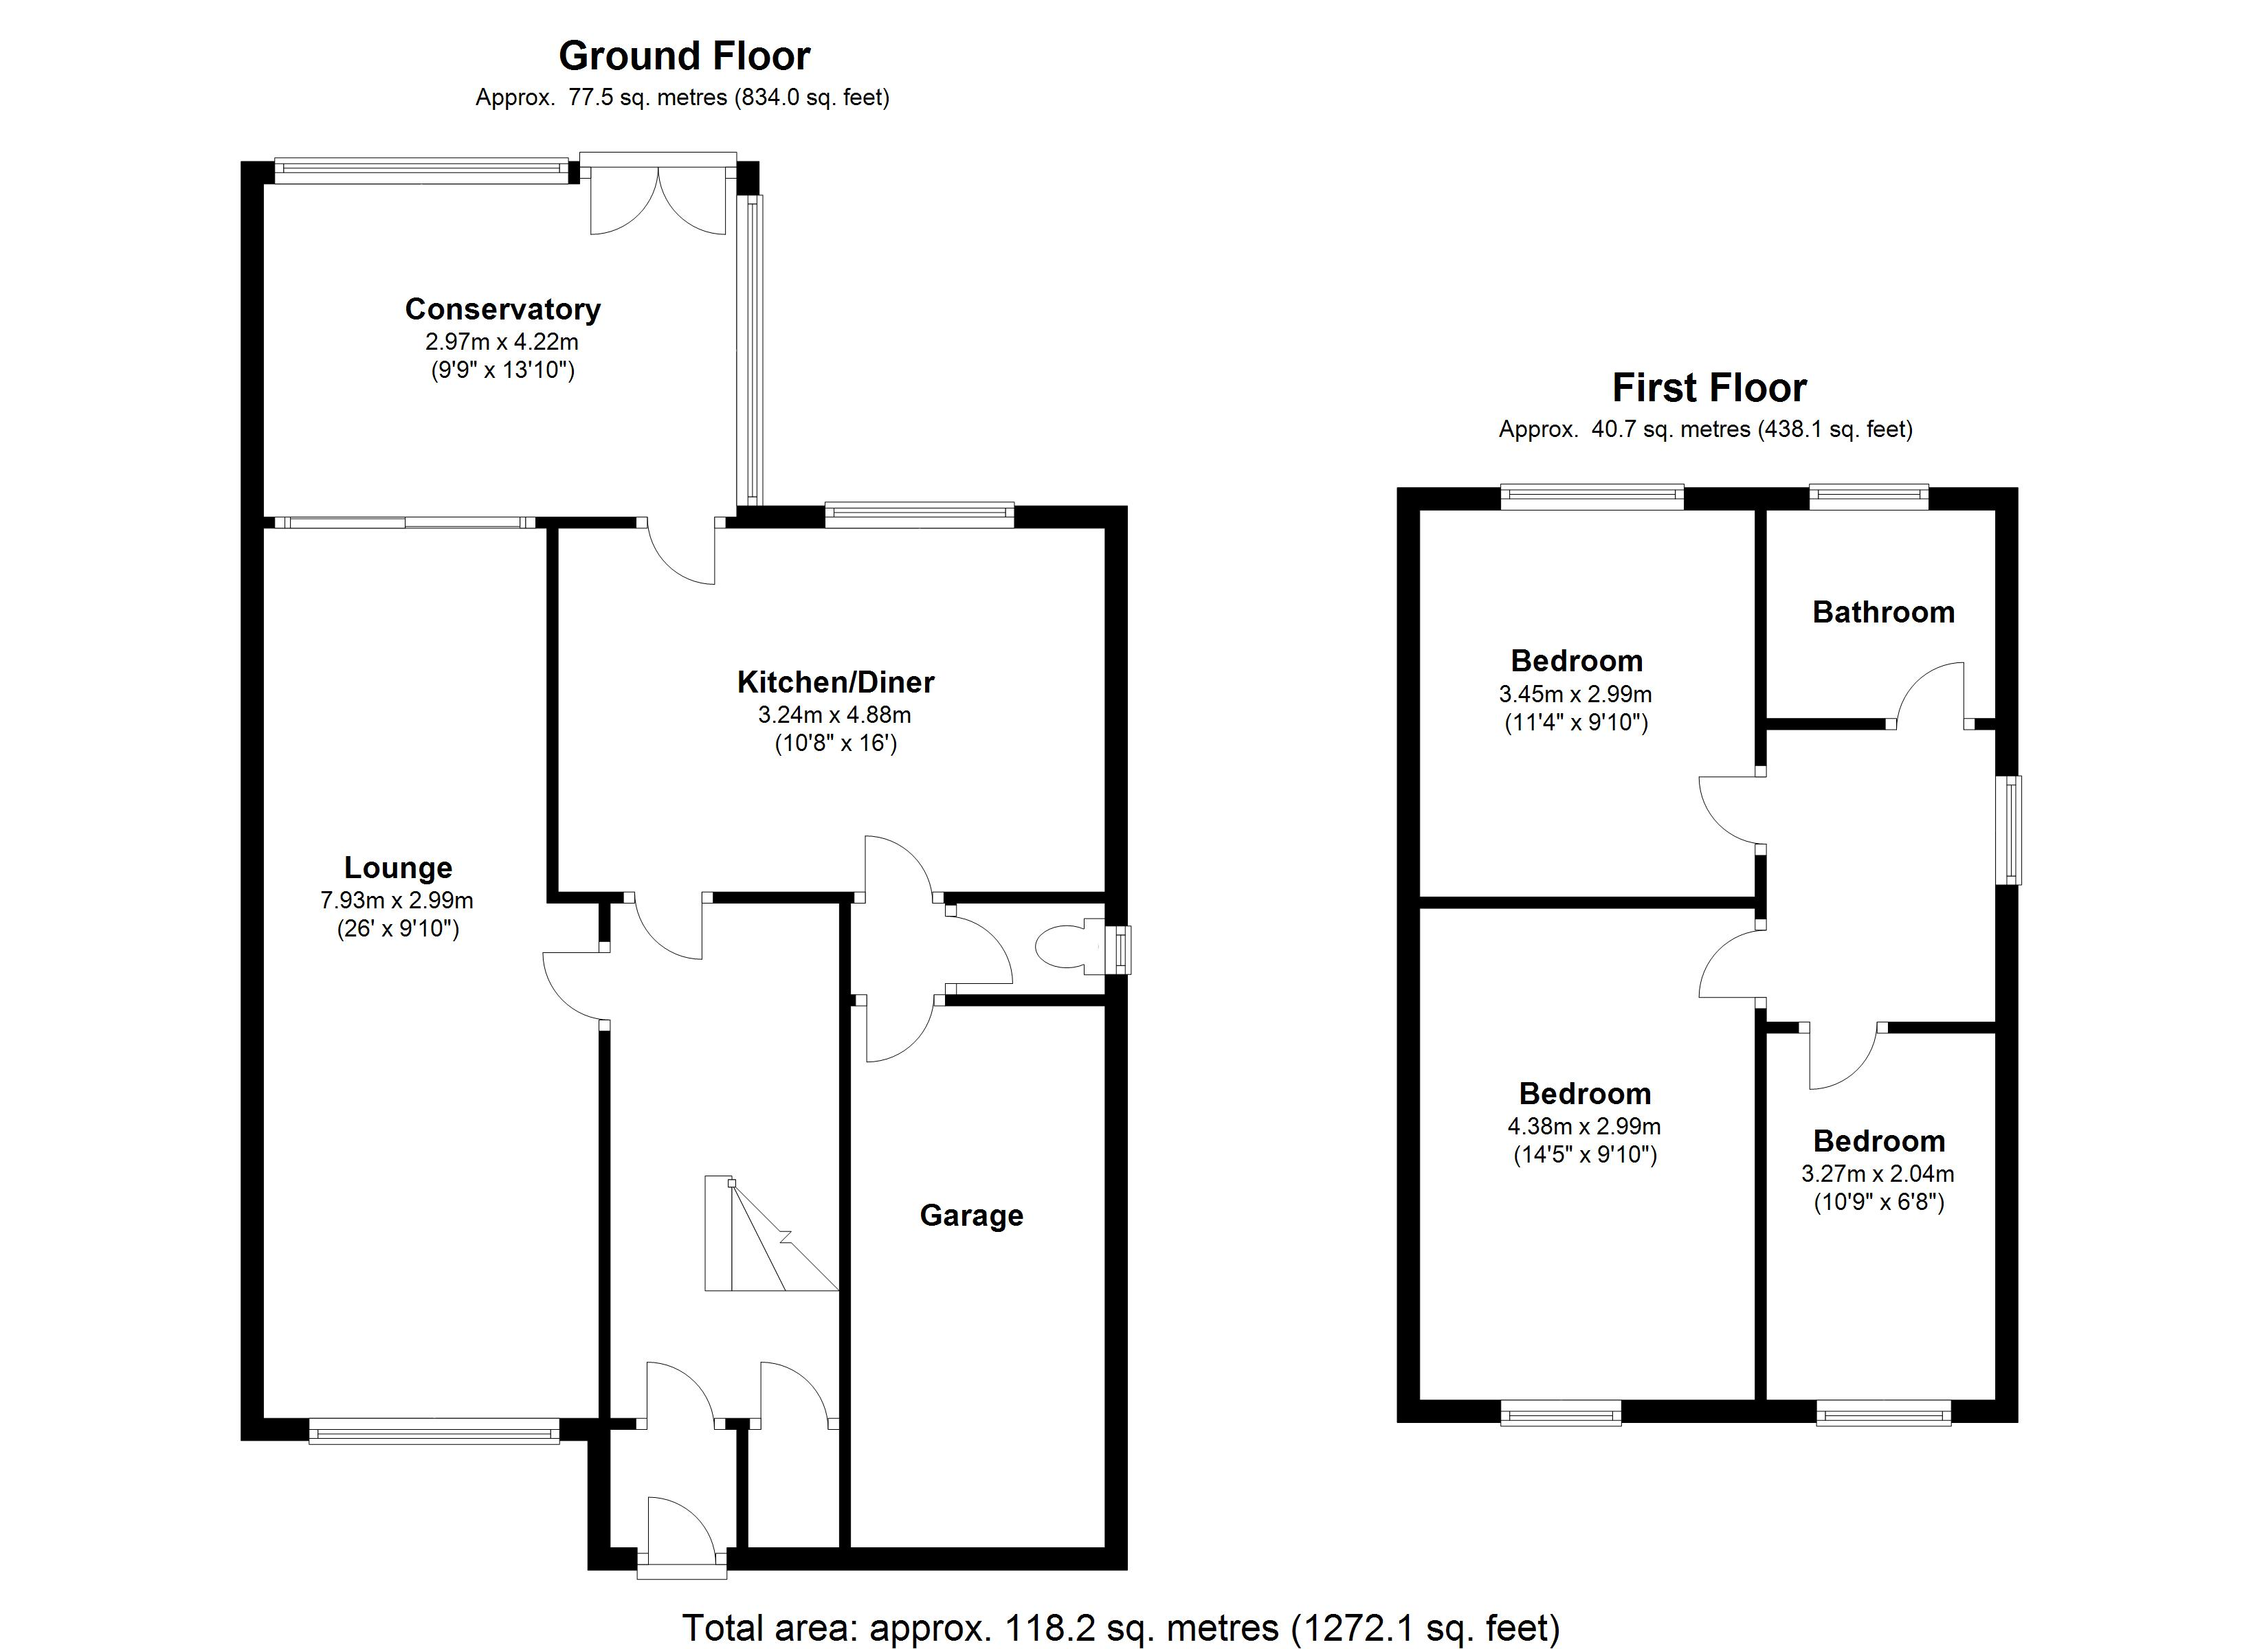 bf falcon audio wiring diagram labelled of hibiscus flower residential detached garage auto electrical and engine